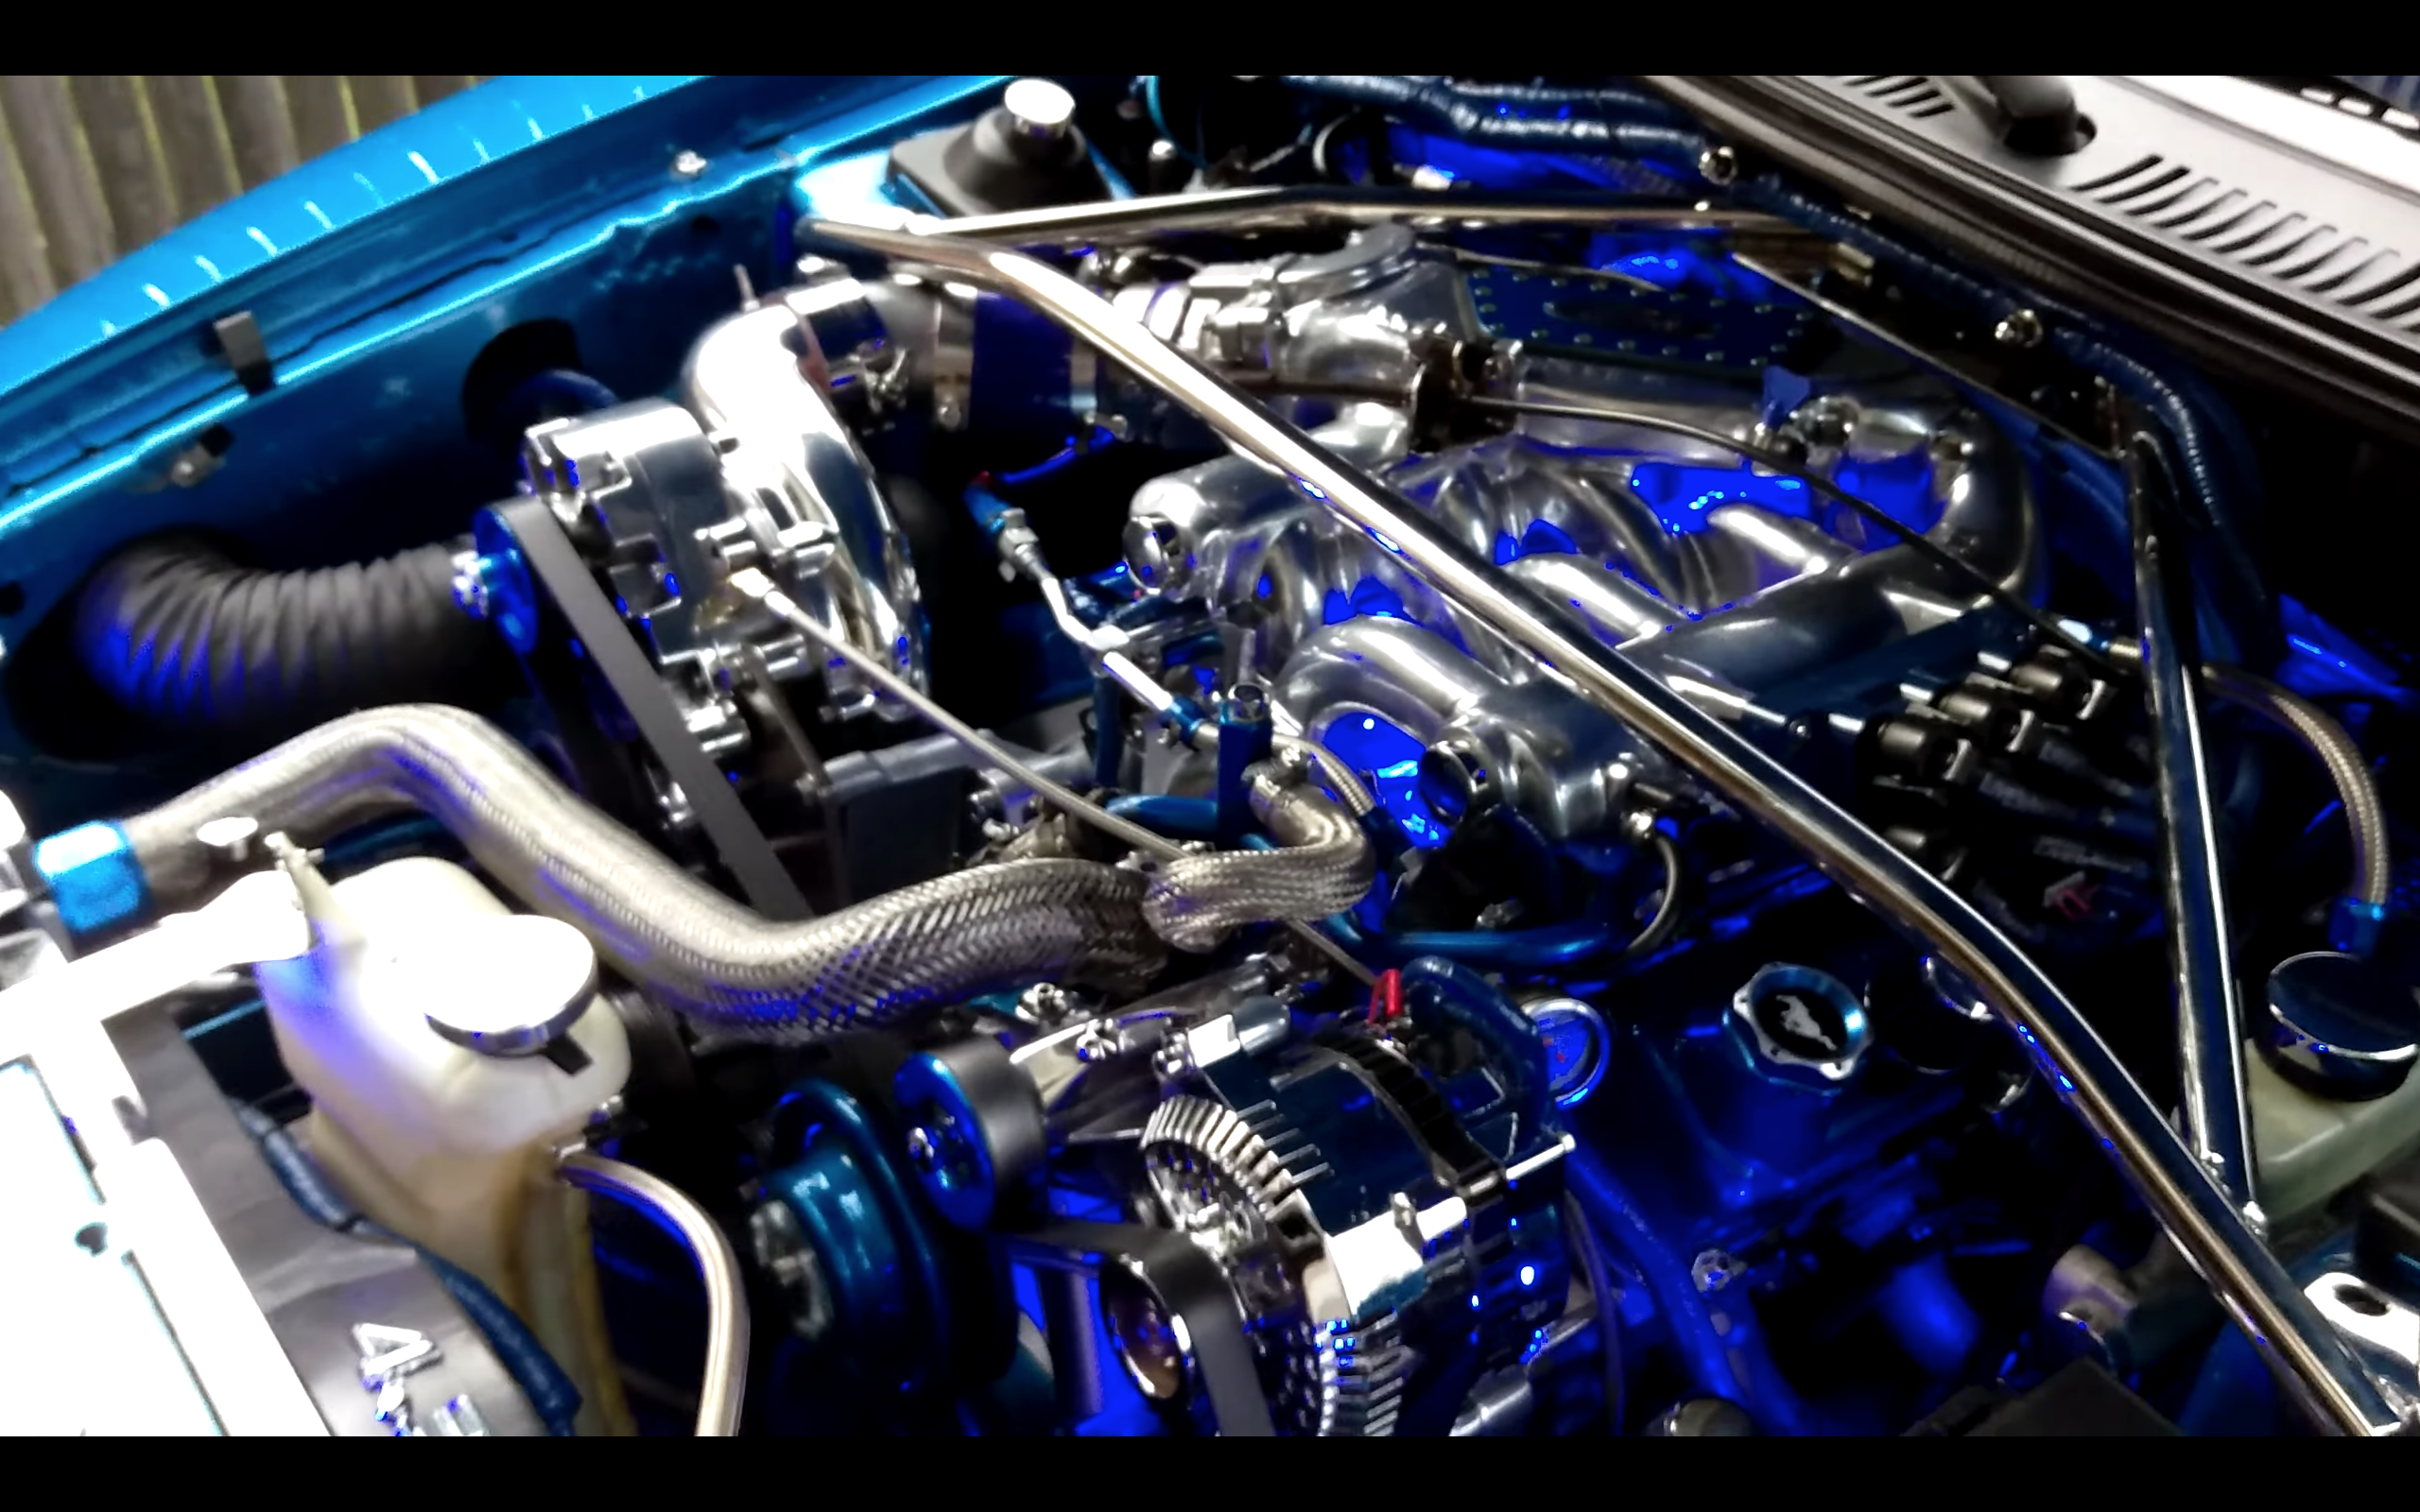 This Blown 1999 Mustang Has An Unusual Engine